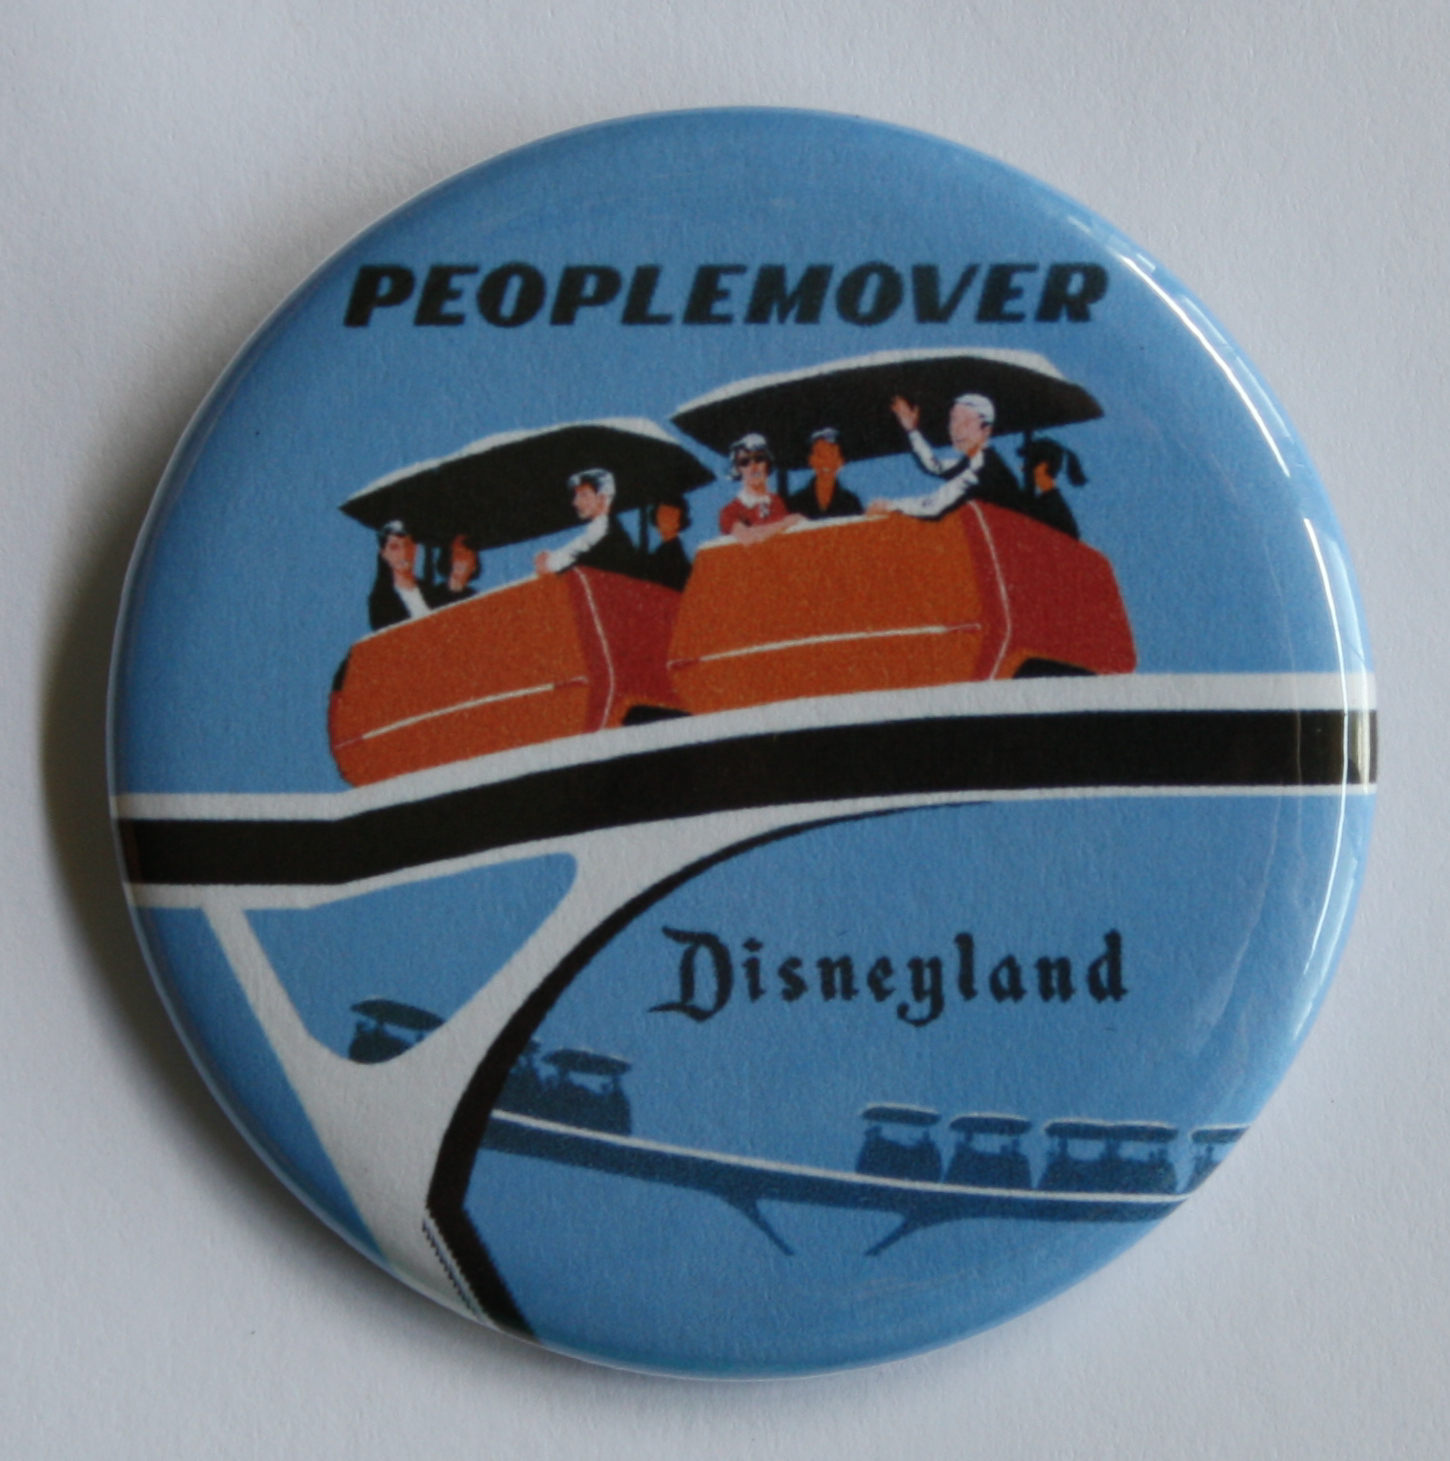 PEOPLEMOVER MAGNET Disneyland Disney Vintage Attraction Tomorrowland Art